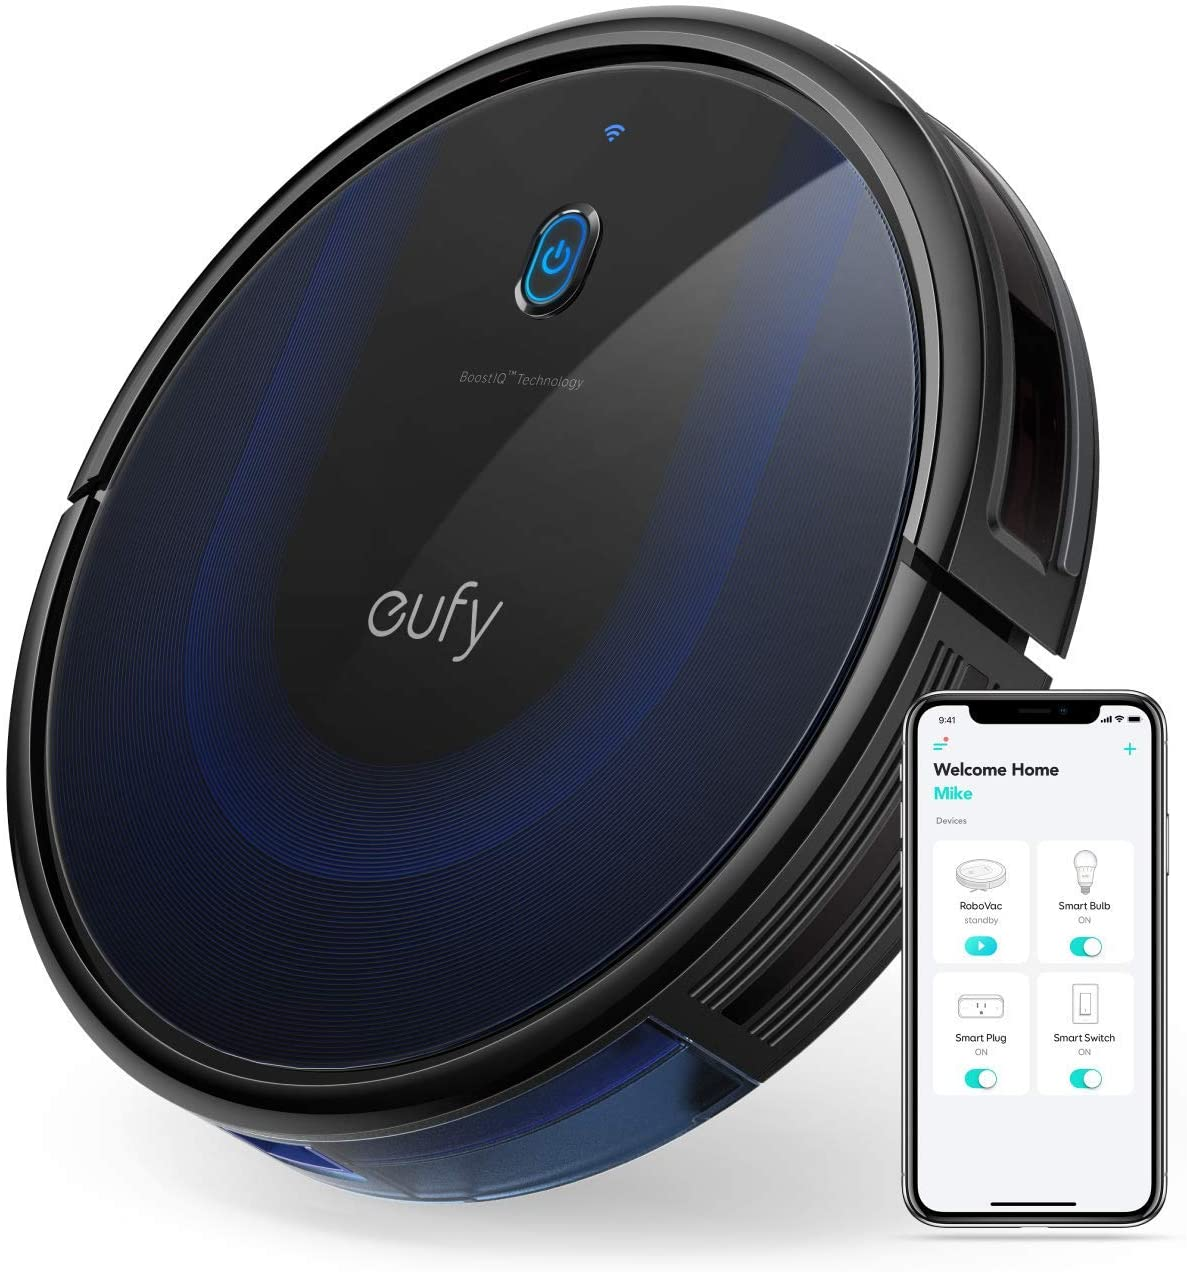 Smart home gadgets - robot vacuum cleaner